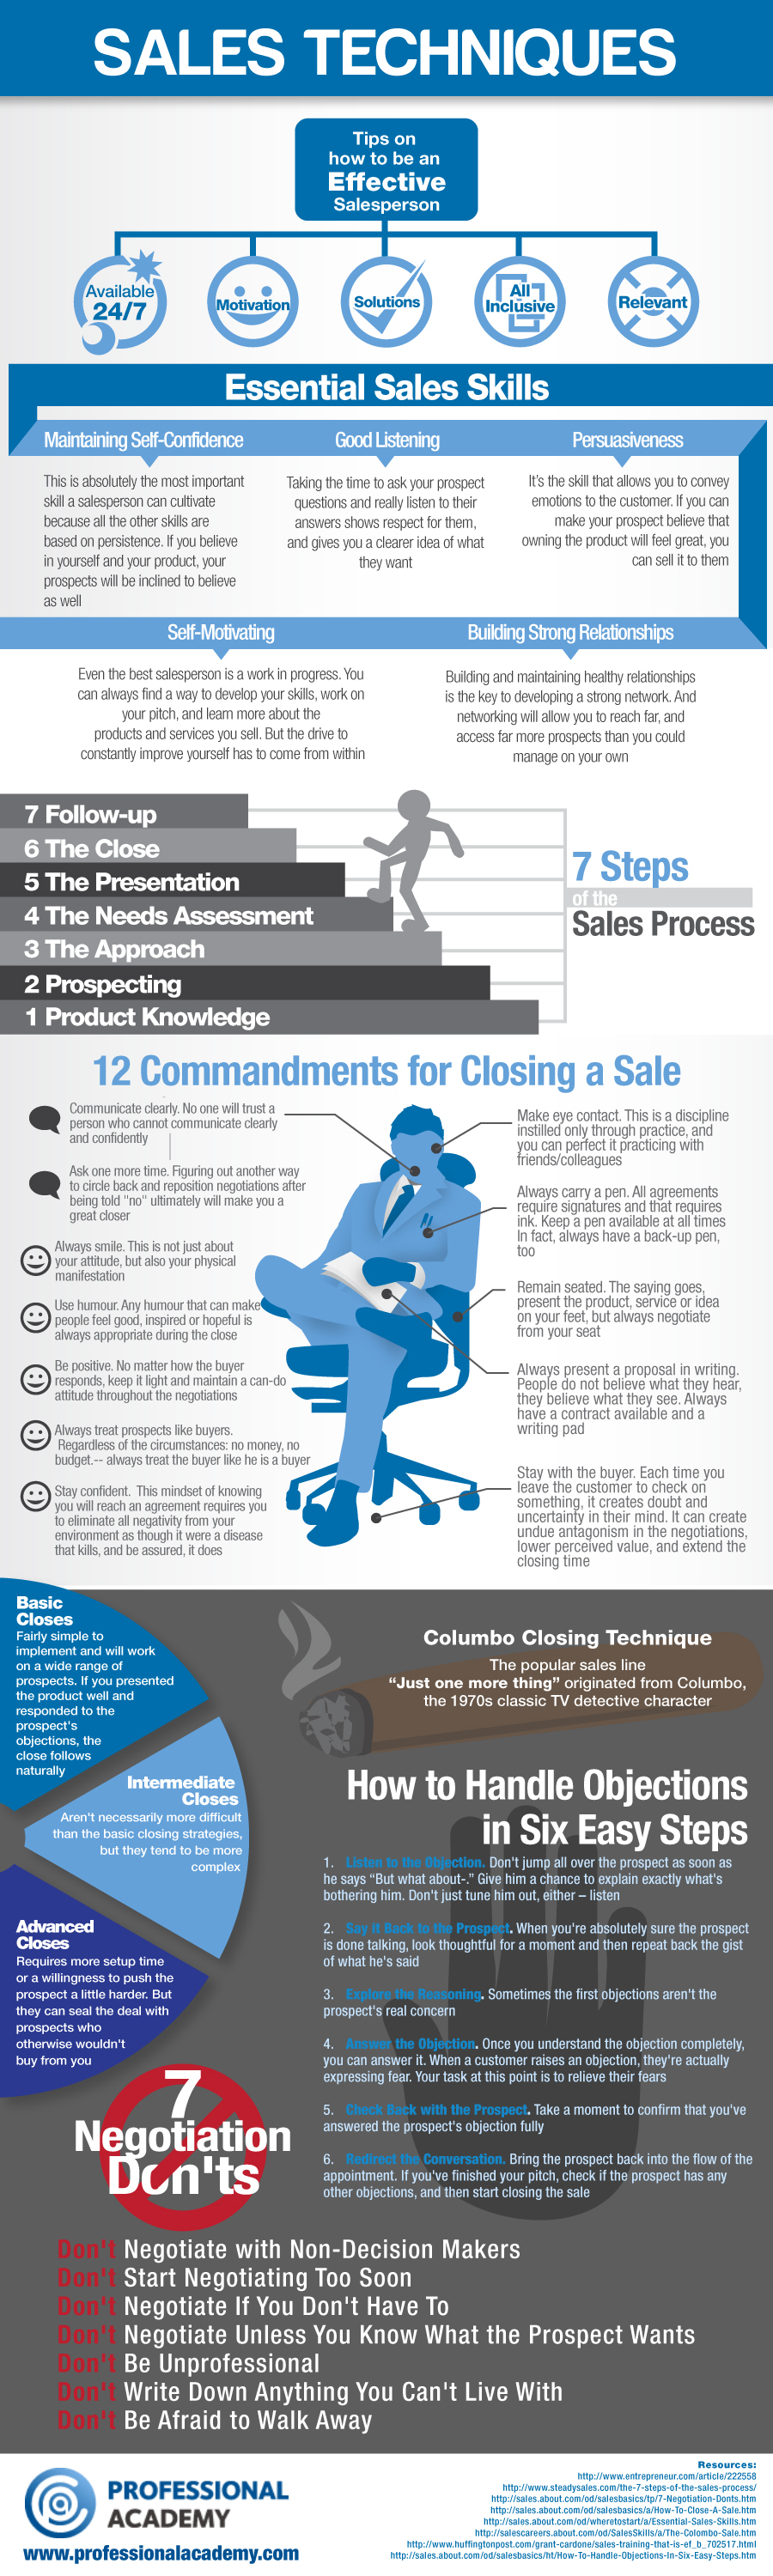 data2CRM Infographic repost Sales Techniques